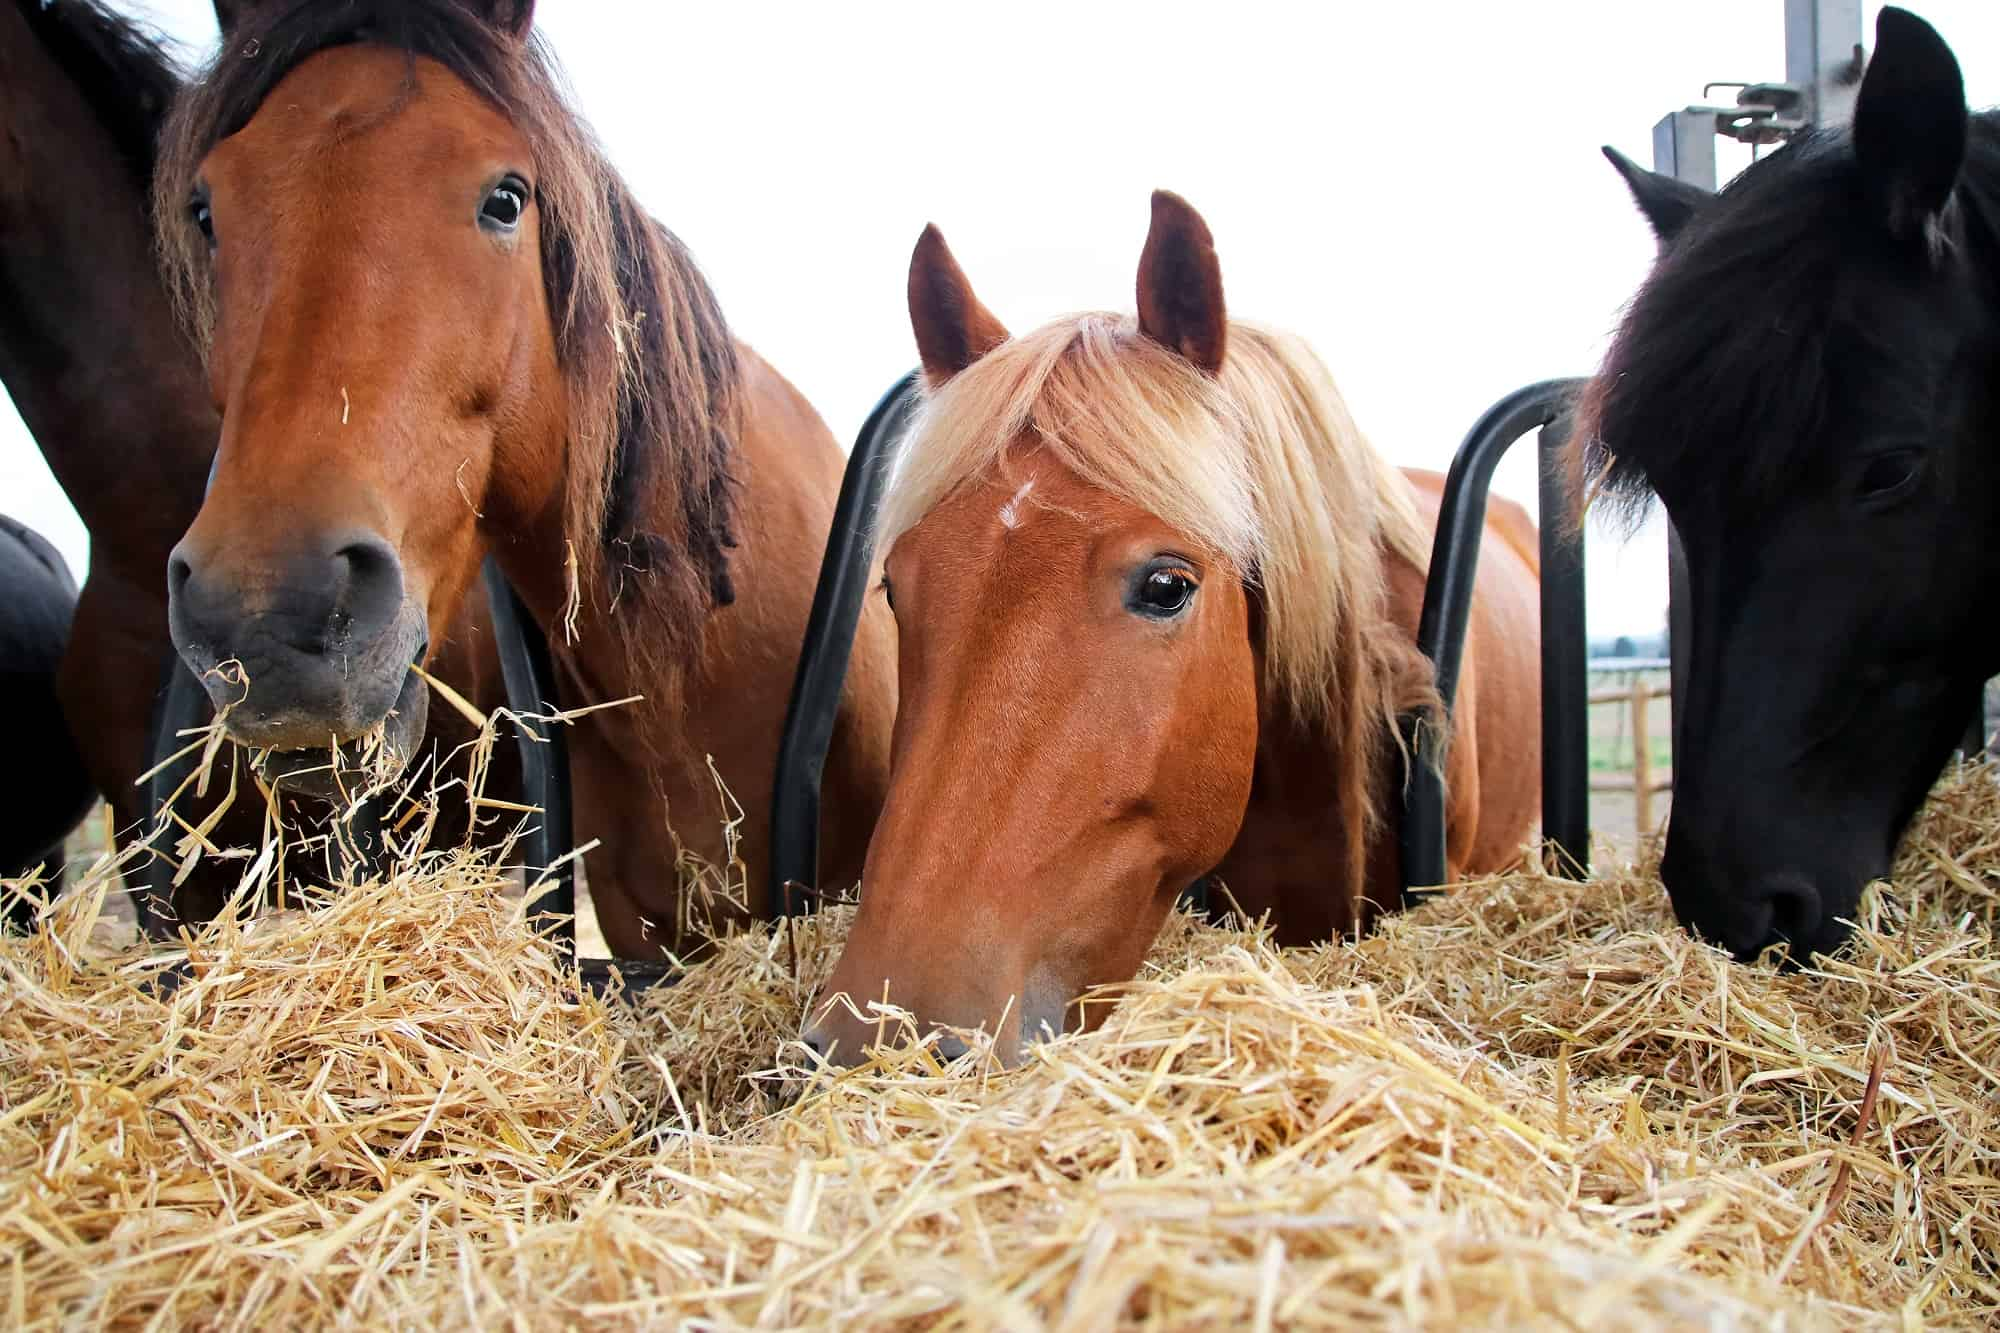 How Much Does a Bale of Hay Cost for Horse